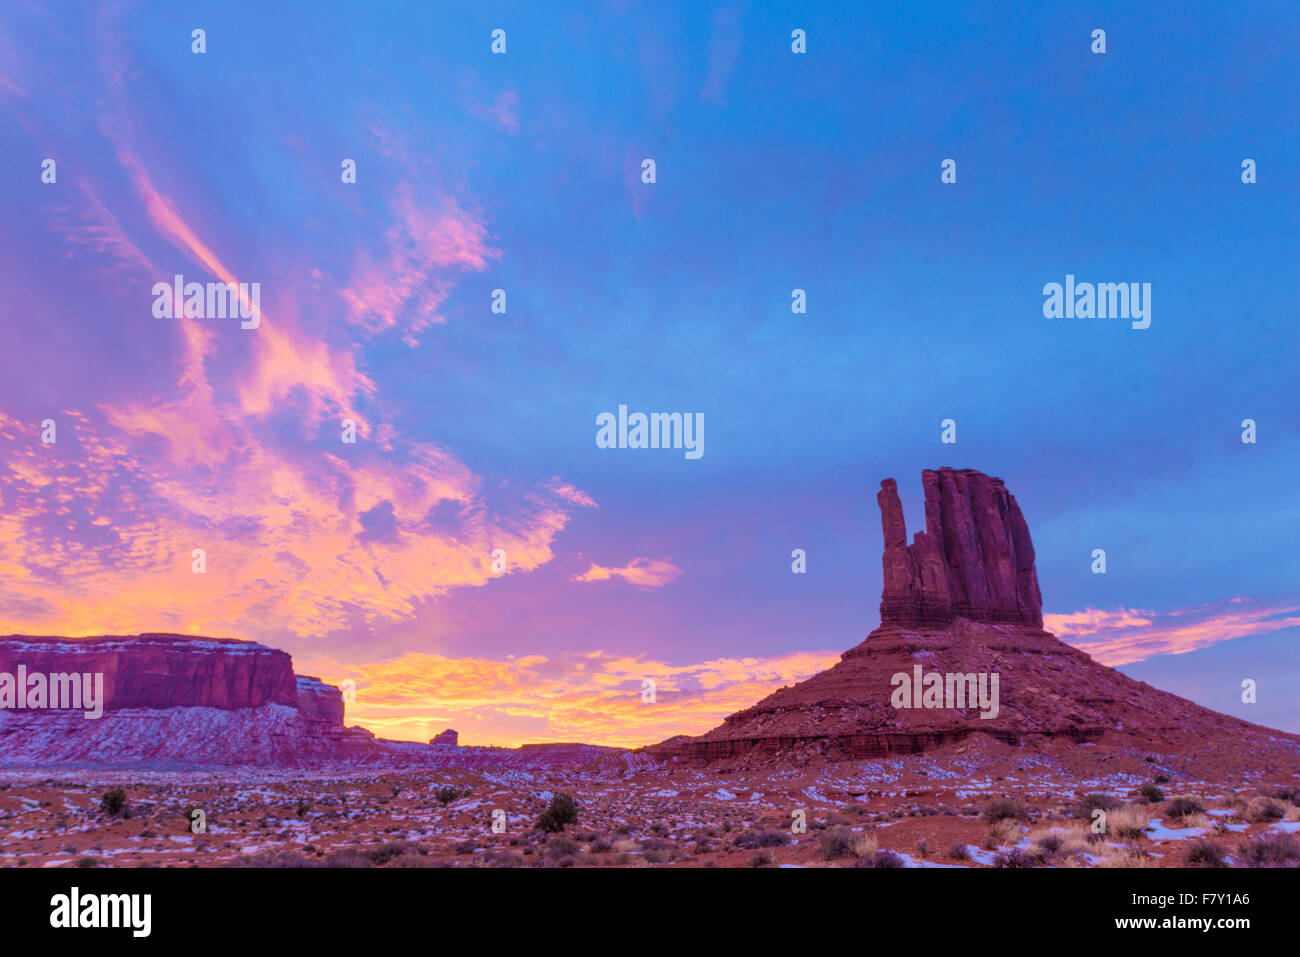 West Mitten Butte and sunset, Monument Valley Tribal Park, Arizona Navajo Reservation - Stock Image